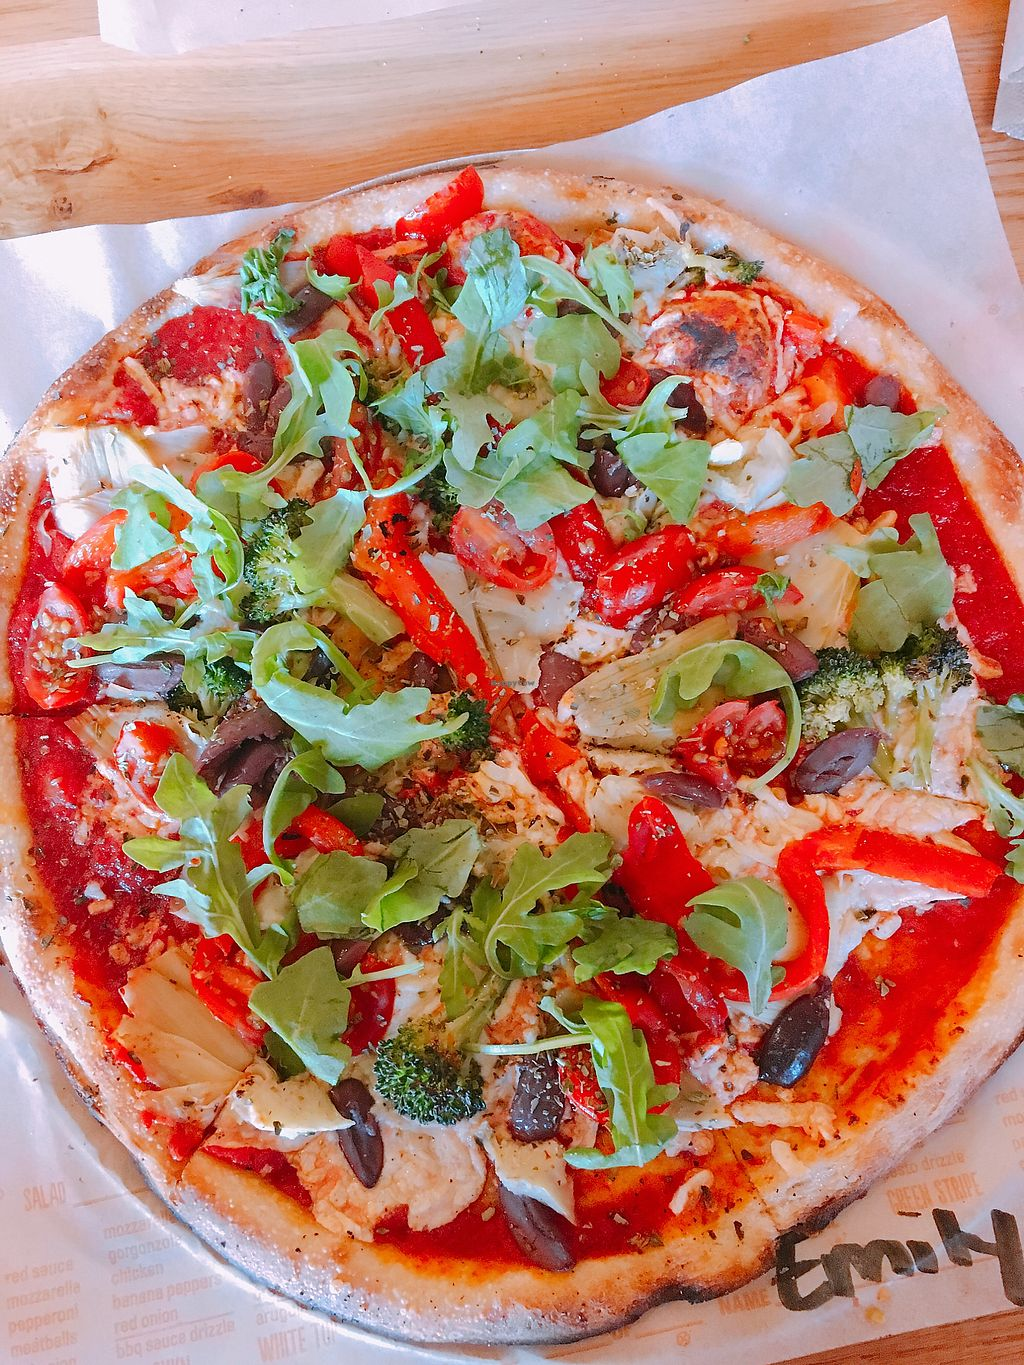 """Photo of Blaze Pizza  by <a href=""""/members/profile/EmilyWessel"""">EmilyWessel</a> <br/>Vegan Blaze Pizza that's customized by yourself; full of veggies, soy cheese, and vegan crust <br/> January 6, 2018  - <a href='/contact/abuse/image/82823/343611'>Report</a>"""